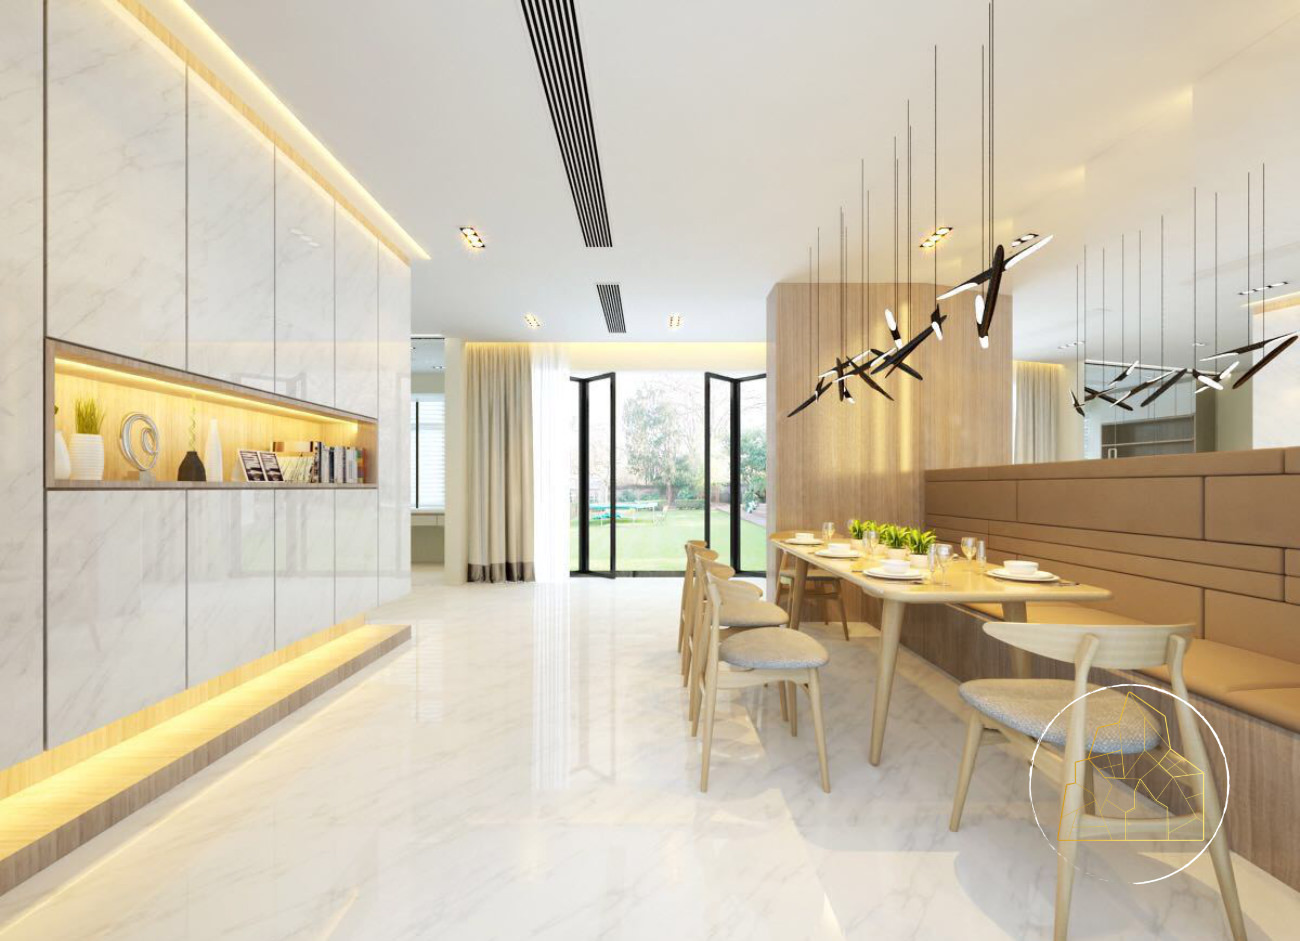 2_Main_LivingHall__InteriorDesign_Renovation_Singapore